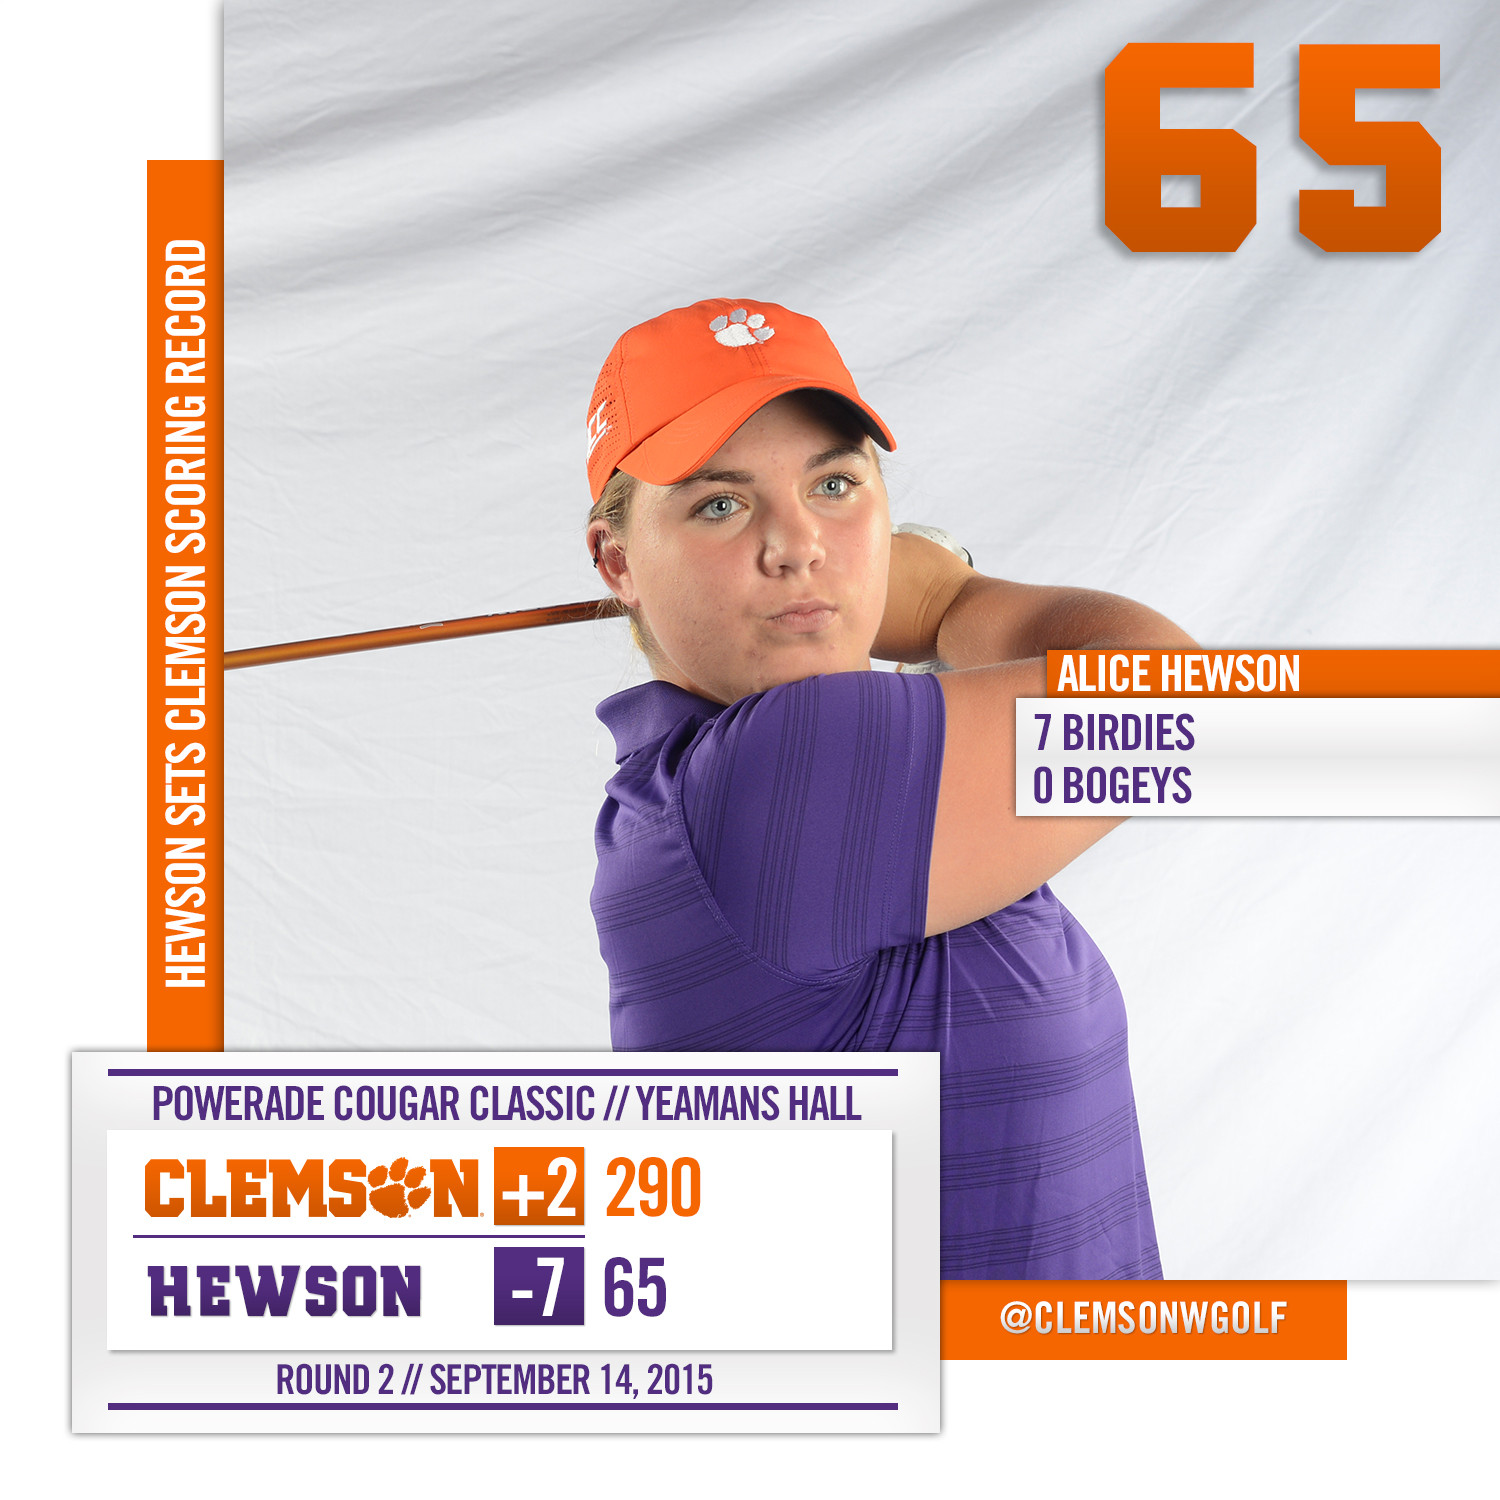 Hewson Sets Clemson Scoring Record